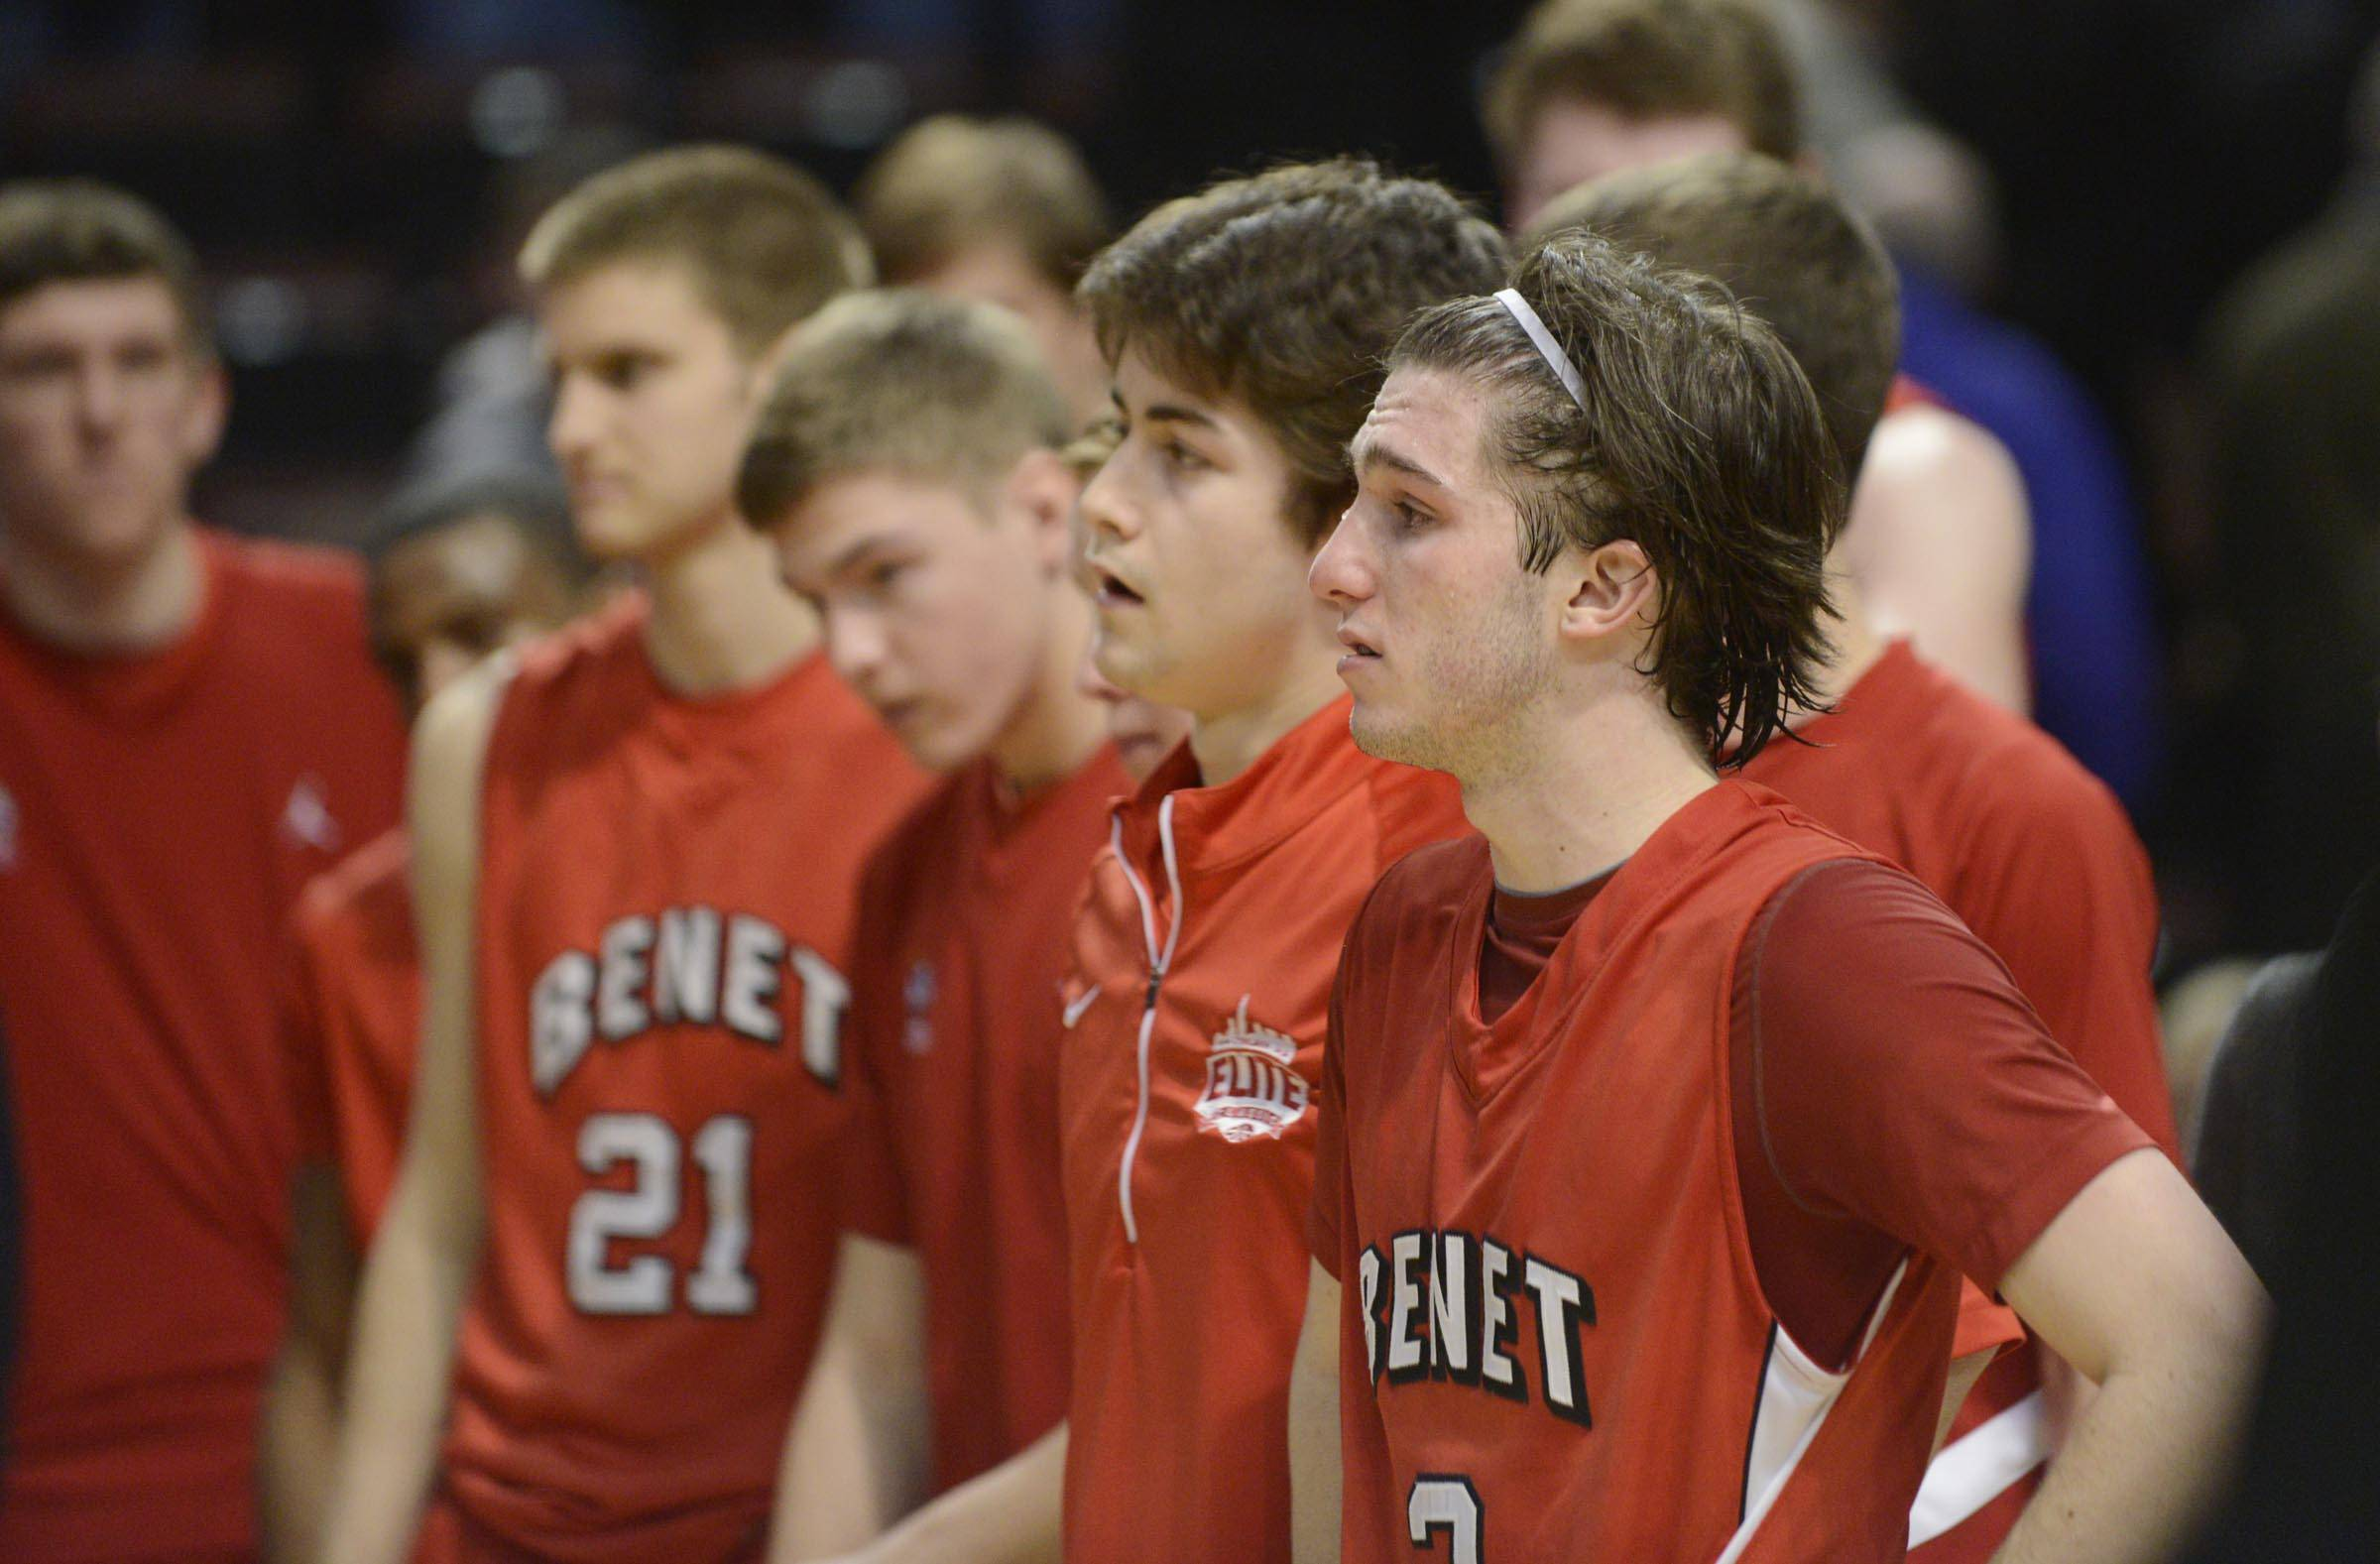 Benet Academy's Collin Pellettieri stands with his teammates after losing to Whitney Young in the Class 4A state championship game at Carver Arena in Peoria Saturday.